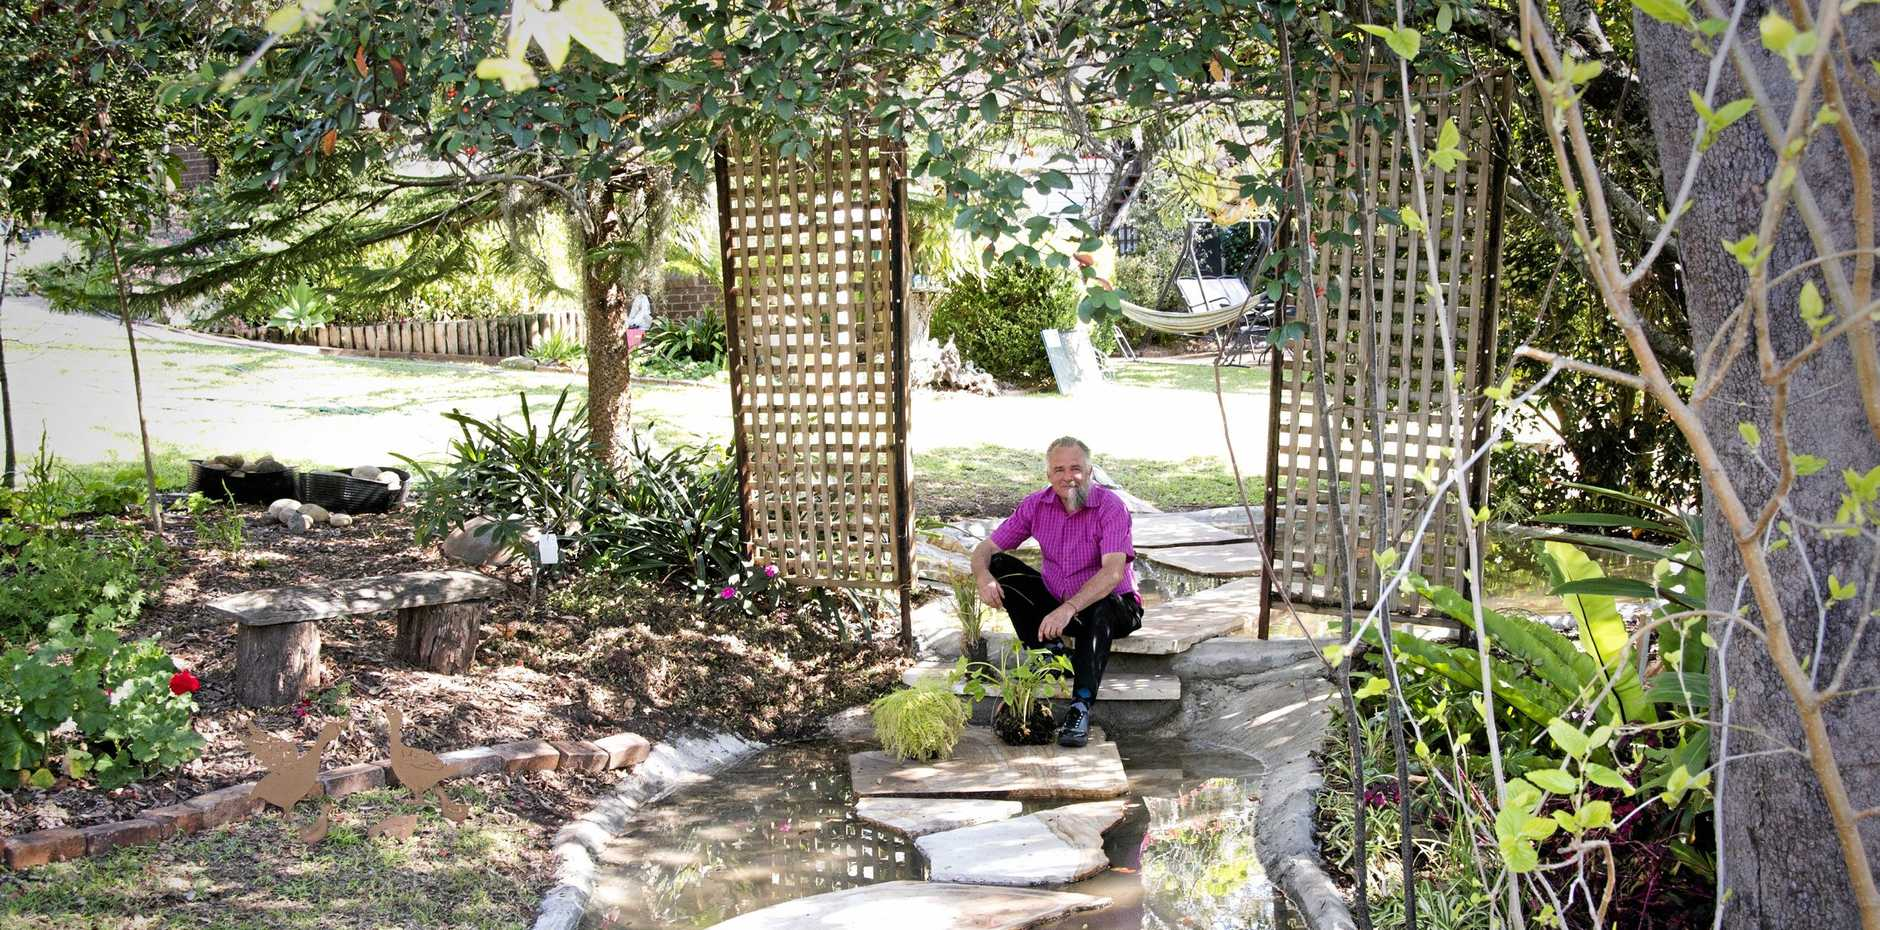 WATER PARADISE: Toowoomba gardener David Stanfield has created two new ponds and is hoping readers might have water plants they could donate.